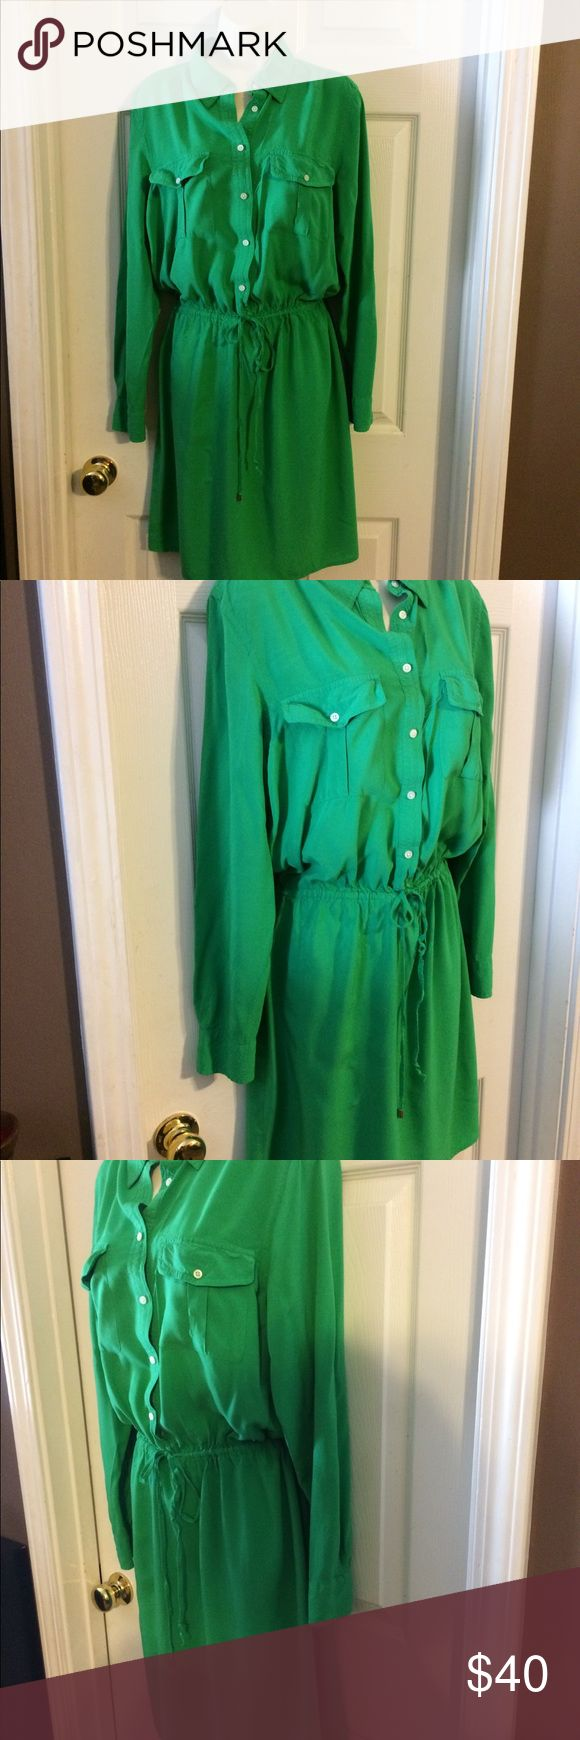 Lauren Ralph Lauren shirt dress size 14. Lauren Ralph Lauren size 14 Emerald green shirt dress long sleeves with buttons, 2 chest patch pockets, shirt tail hem, waist cinch belt, there is a missing gold tip on one, button front top closure, pleat in the back, excellent used condition can be worn with sandals, heels or boots dressed up or down with a quality item like this you can wear it however you want to! Lauren Ralph Lauren Dresses